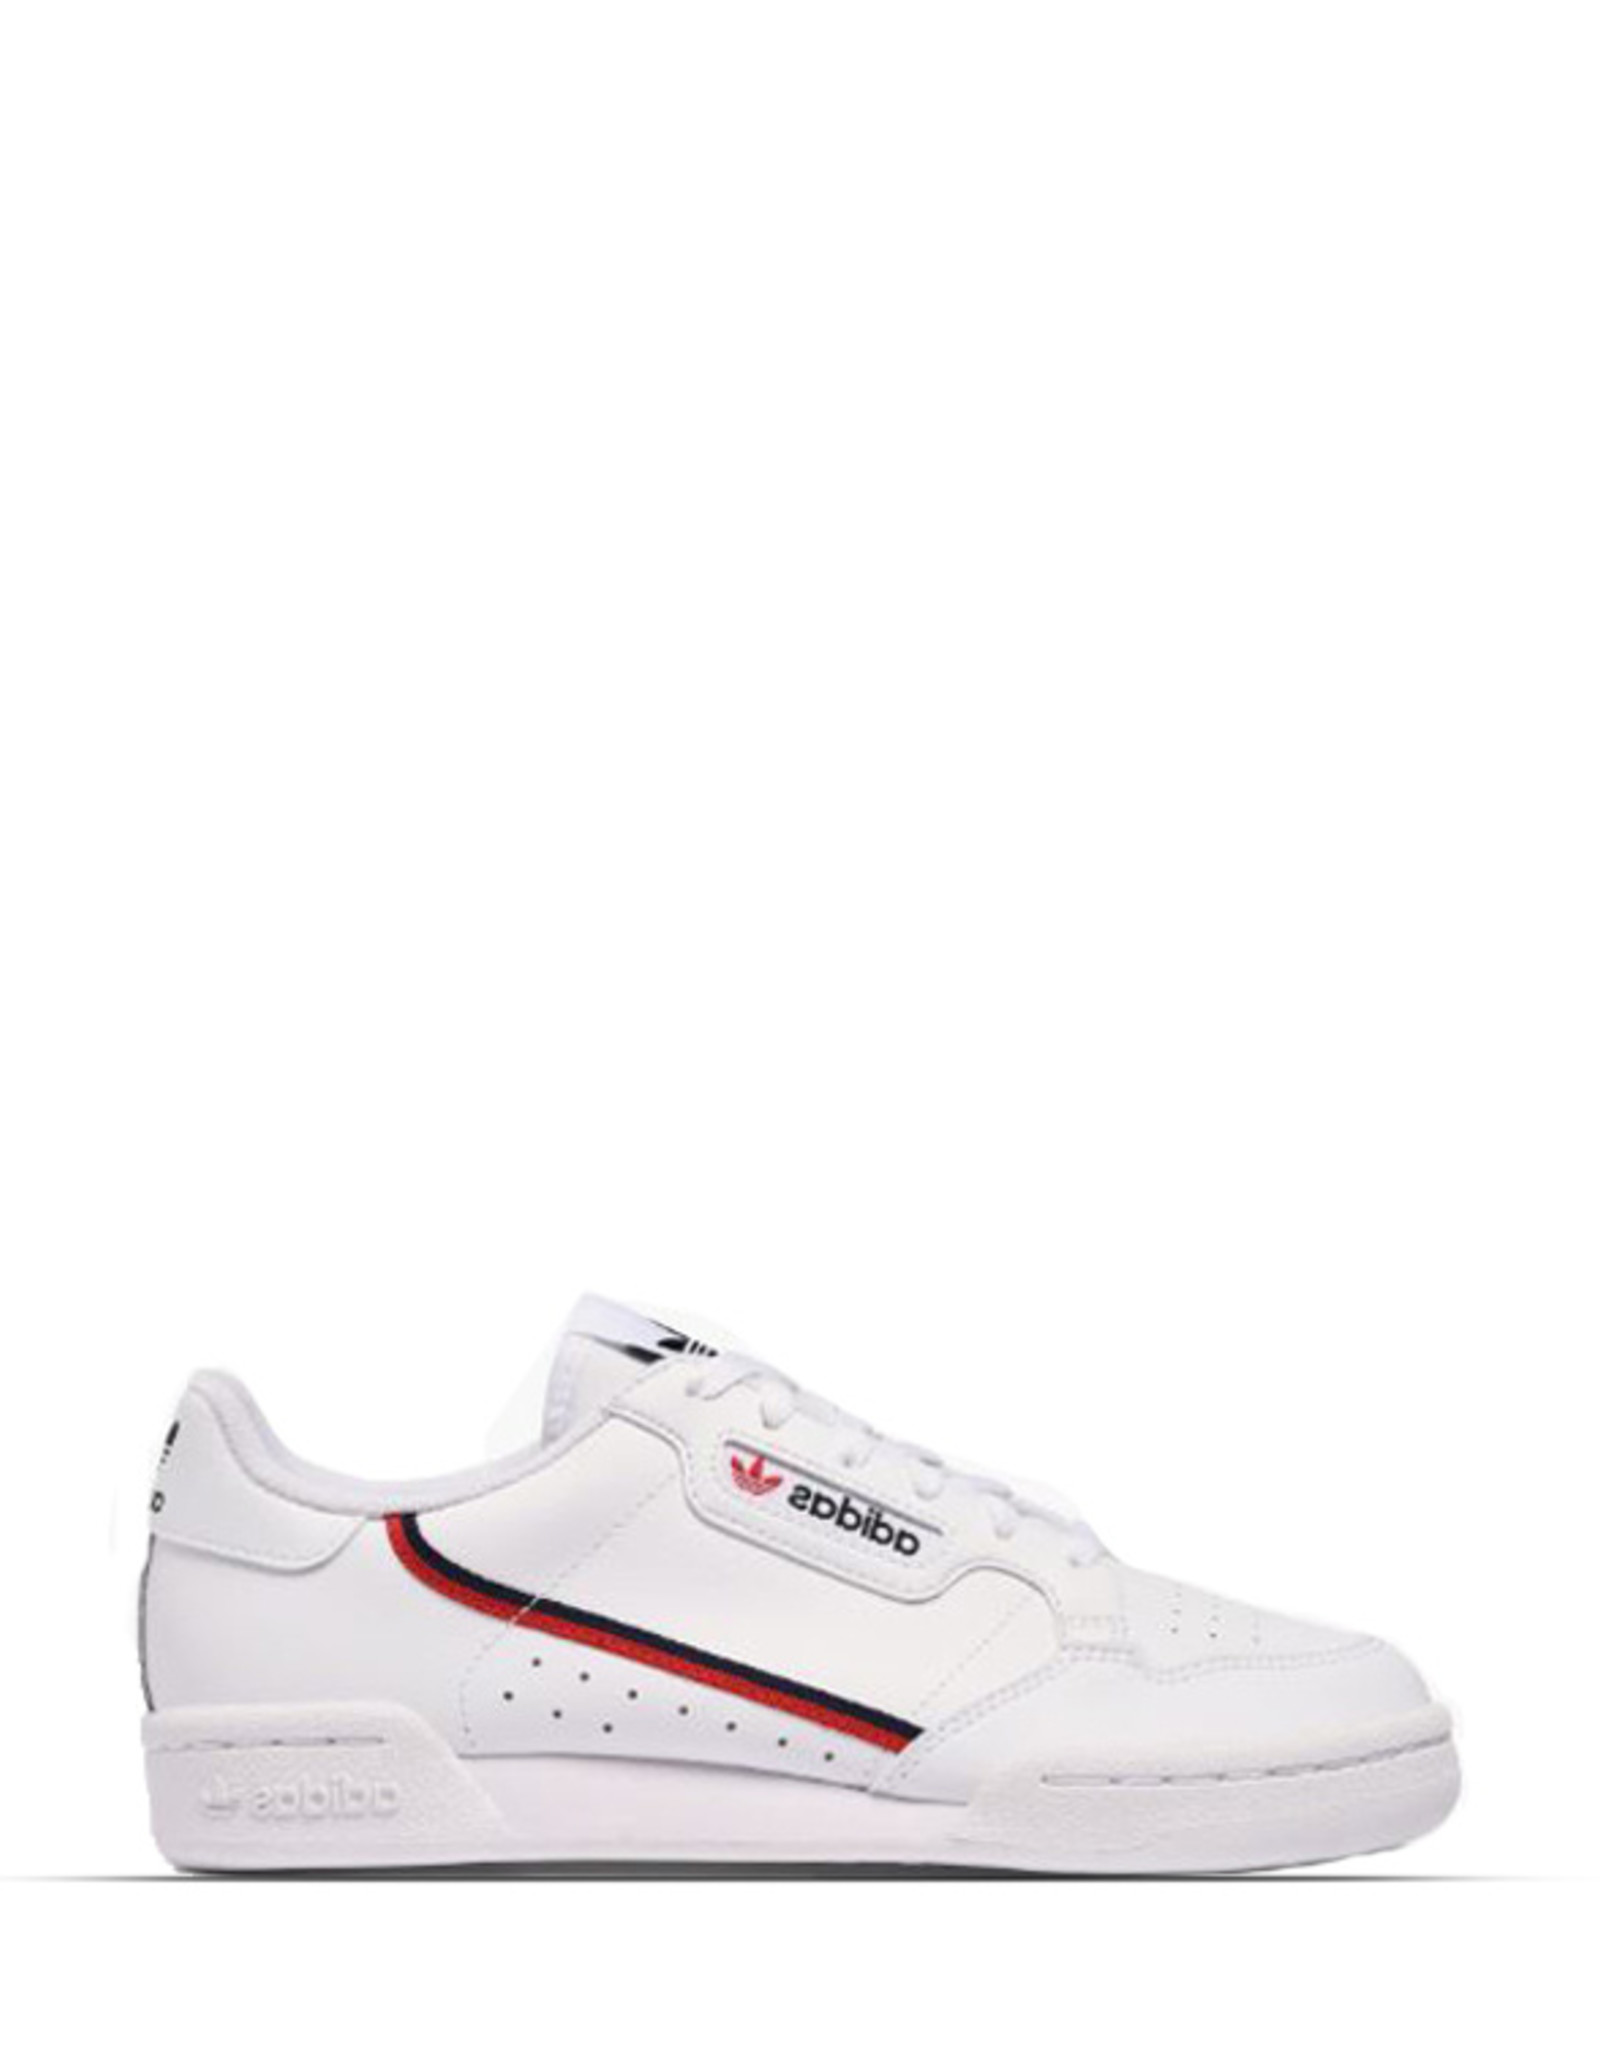 ADIDAS CONTINENTAL 80 WHITE SCARLET RED JUNIOR